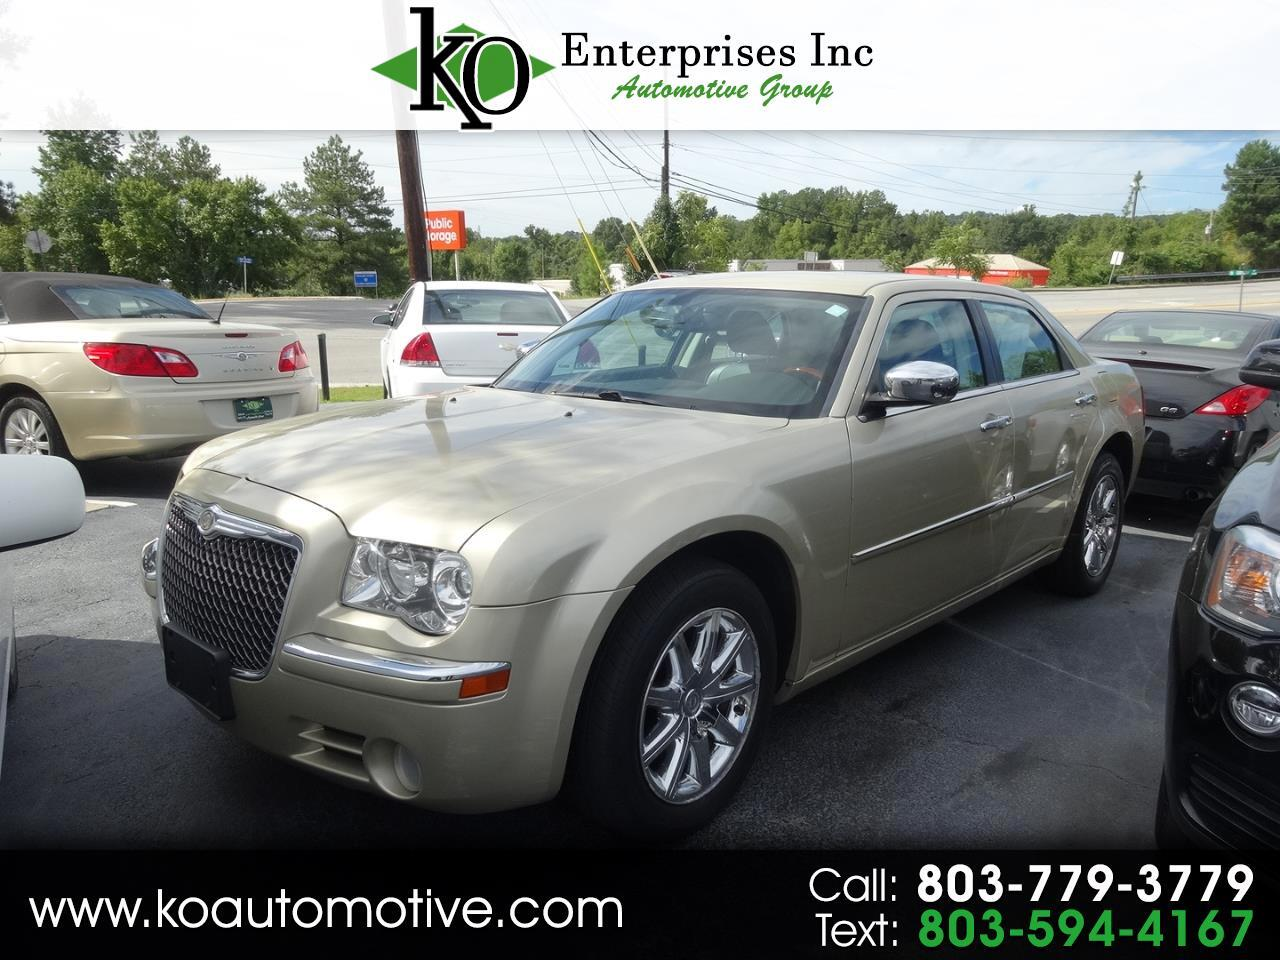 2010 Chrysler 300 4dr Sdn Limited RWD